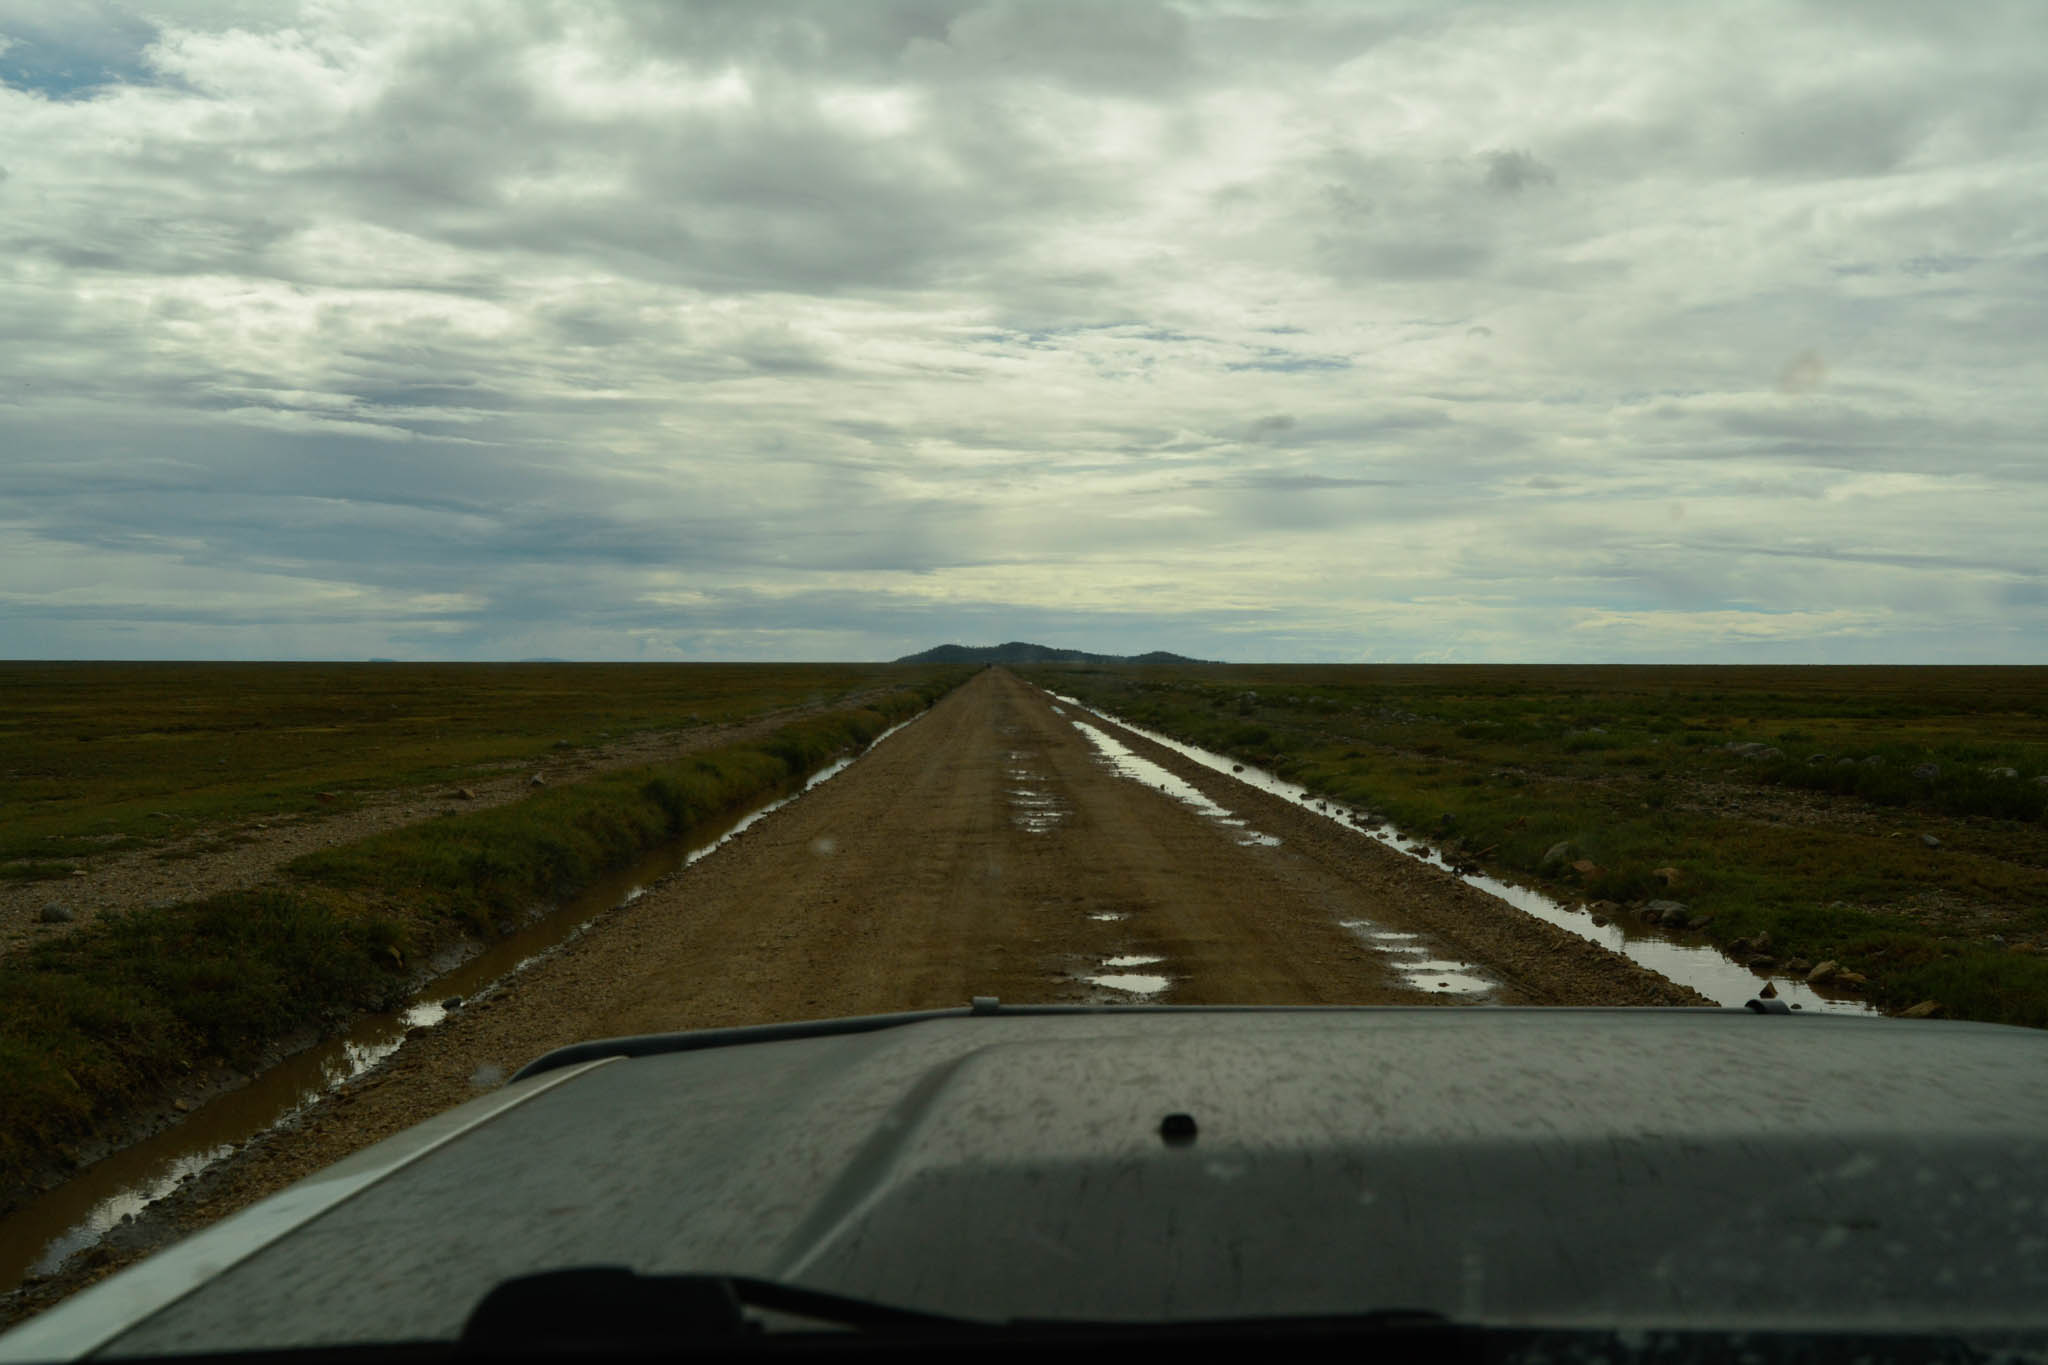 Road conditions in the Serengeti